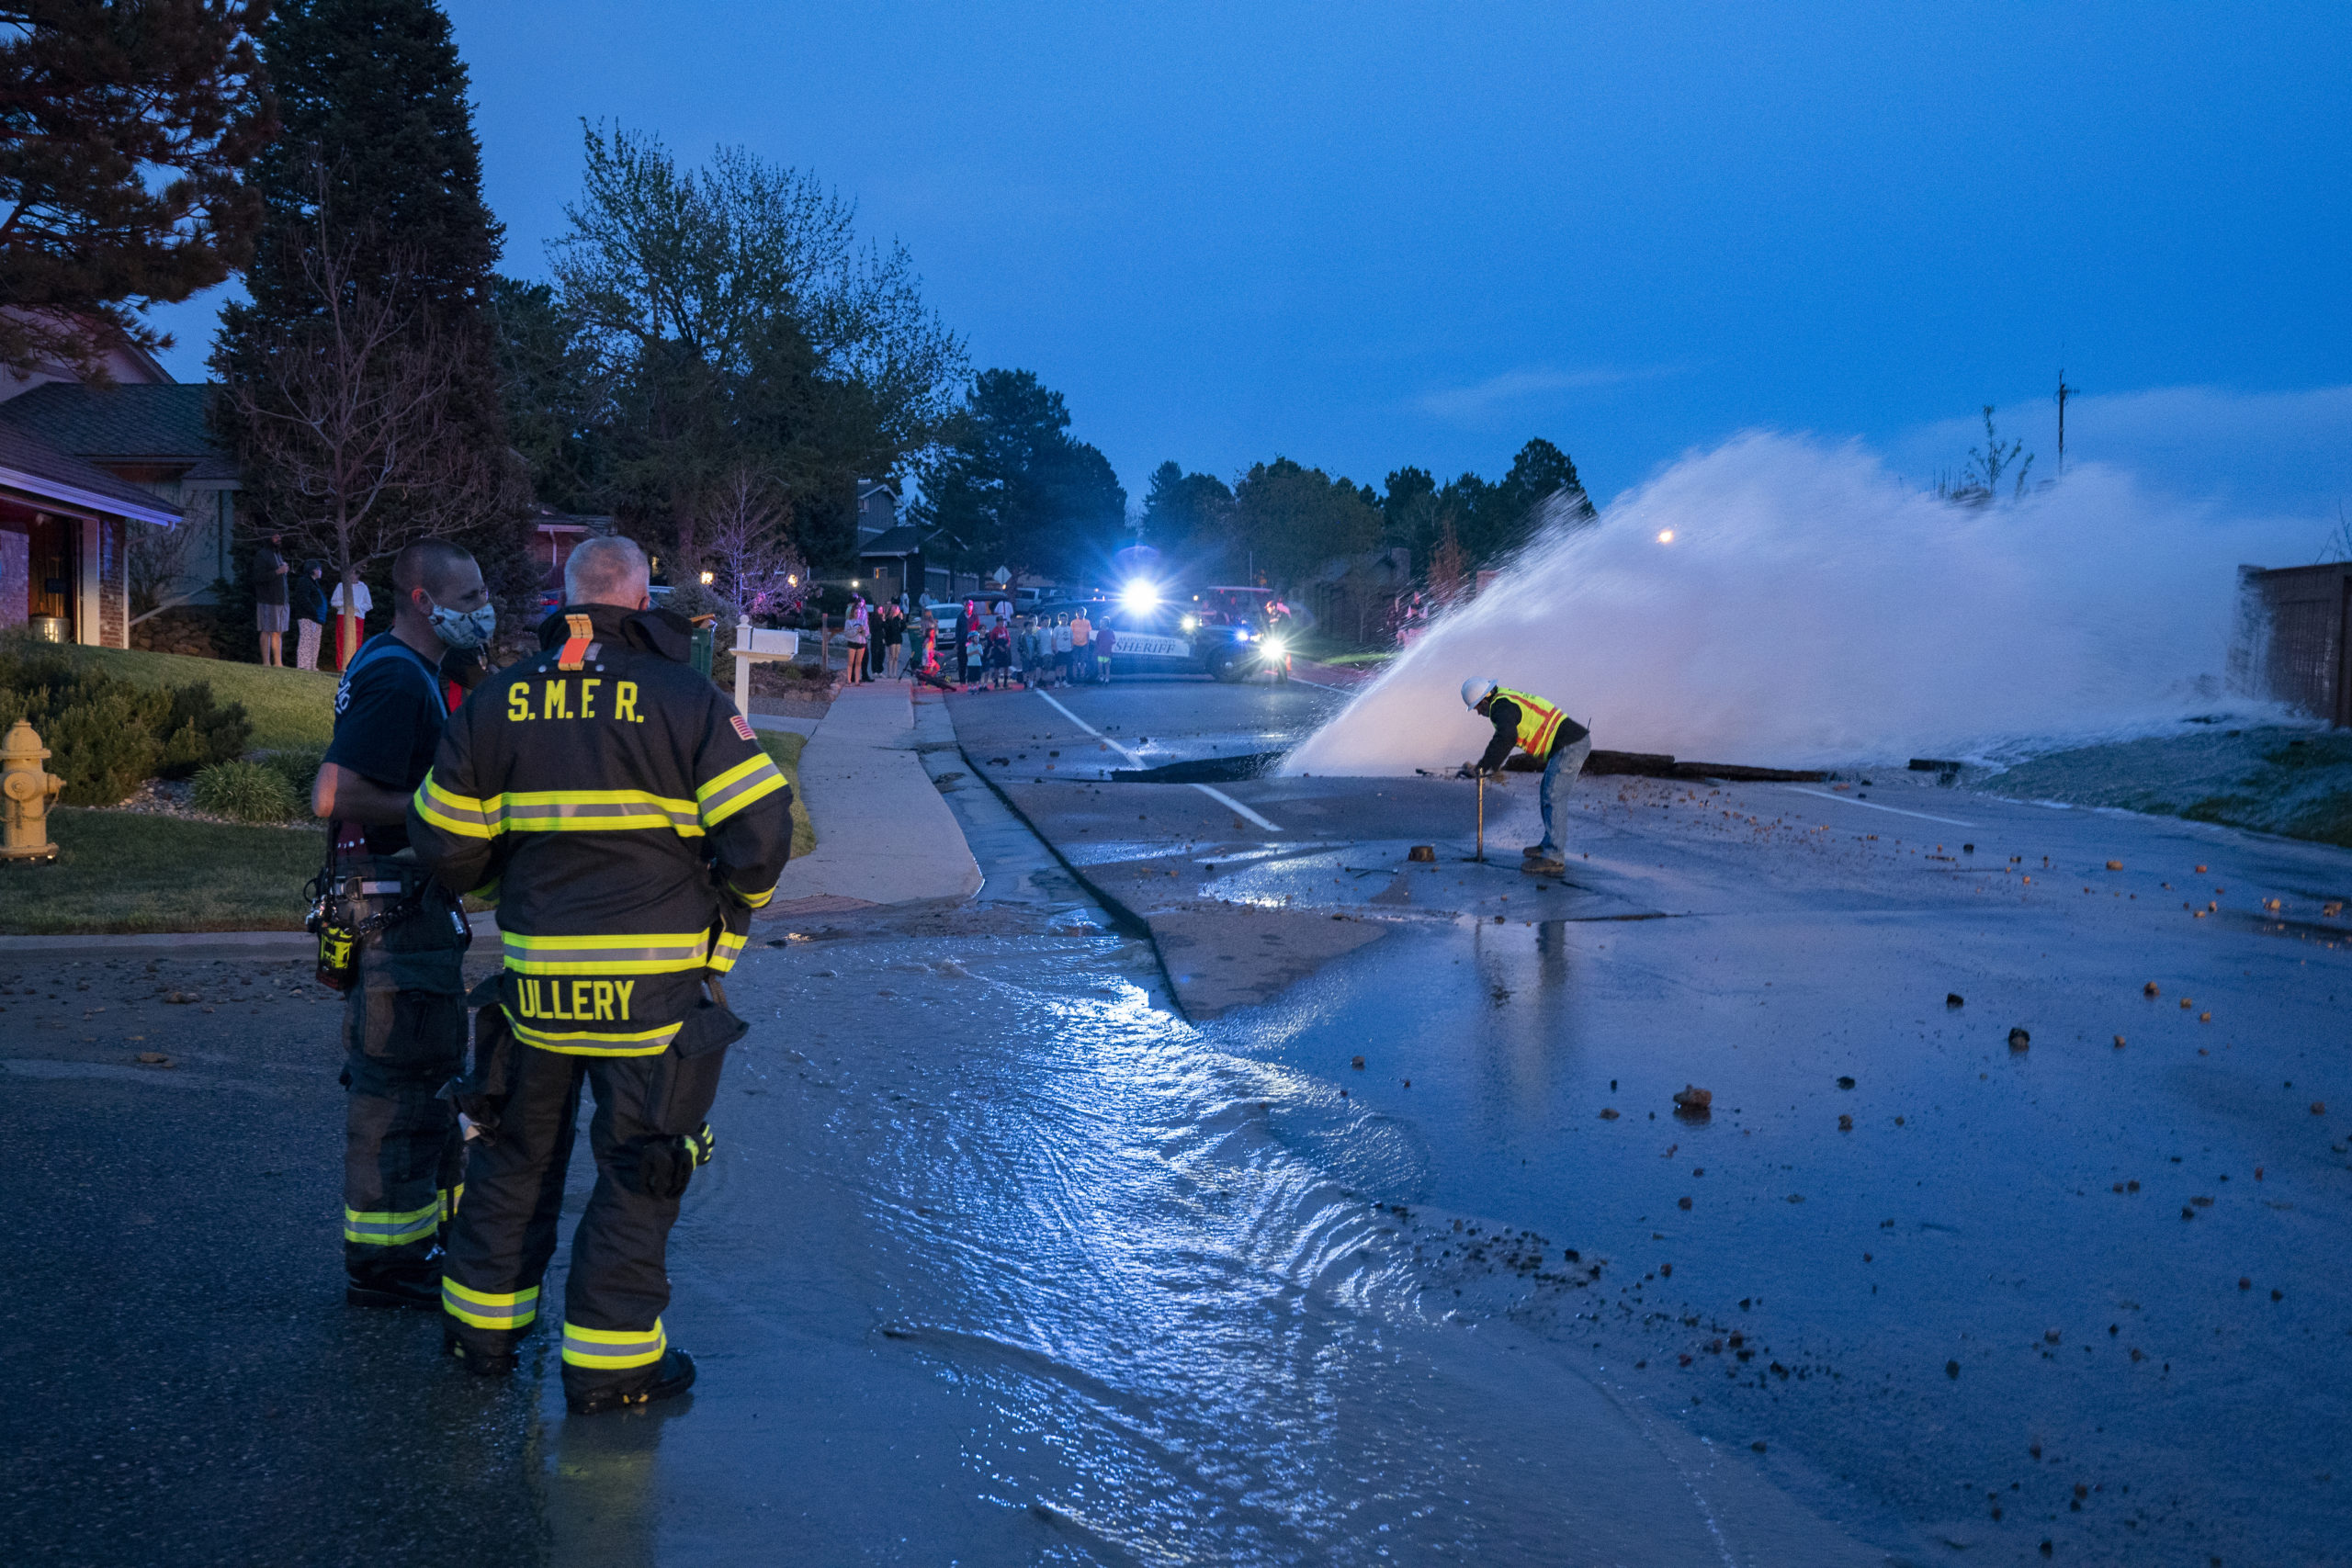 Firefighters from South Metro Fire and Rescue assisted with public safety while Denver Water crews turned off water from the break. Photo credit: South Metro Fire and Rescue.